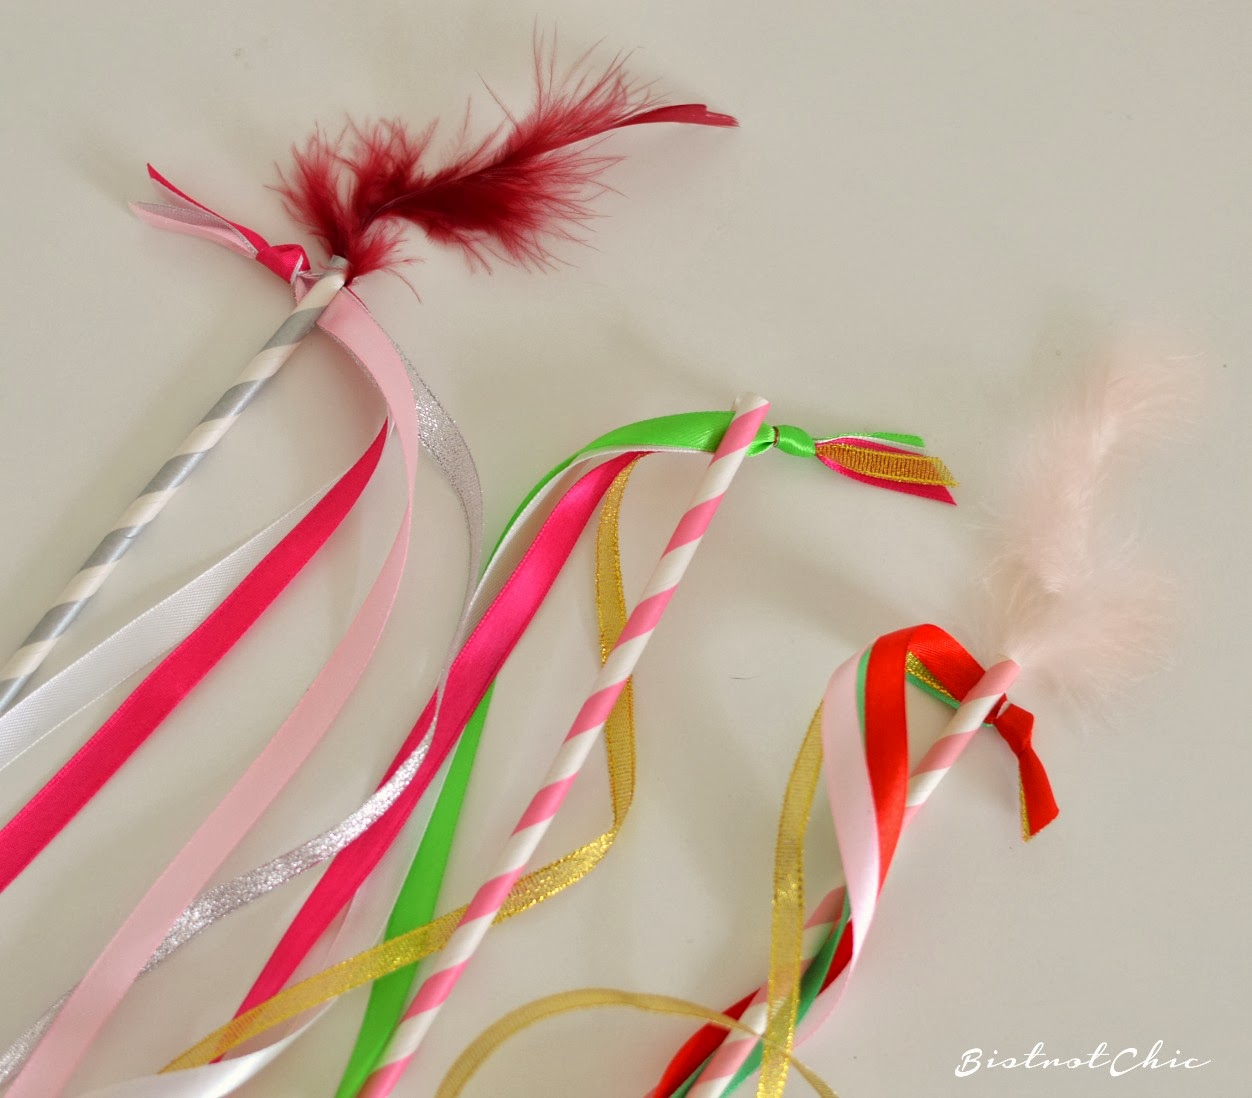 DIY Party Magic Wands by BistrotChic